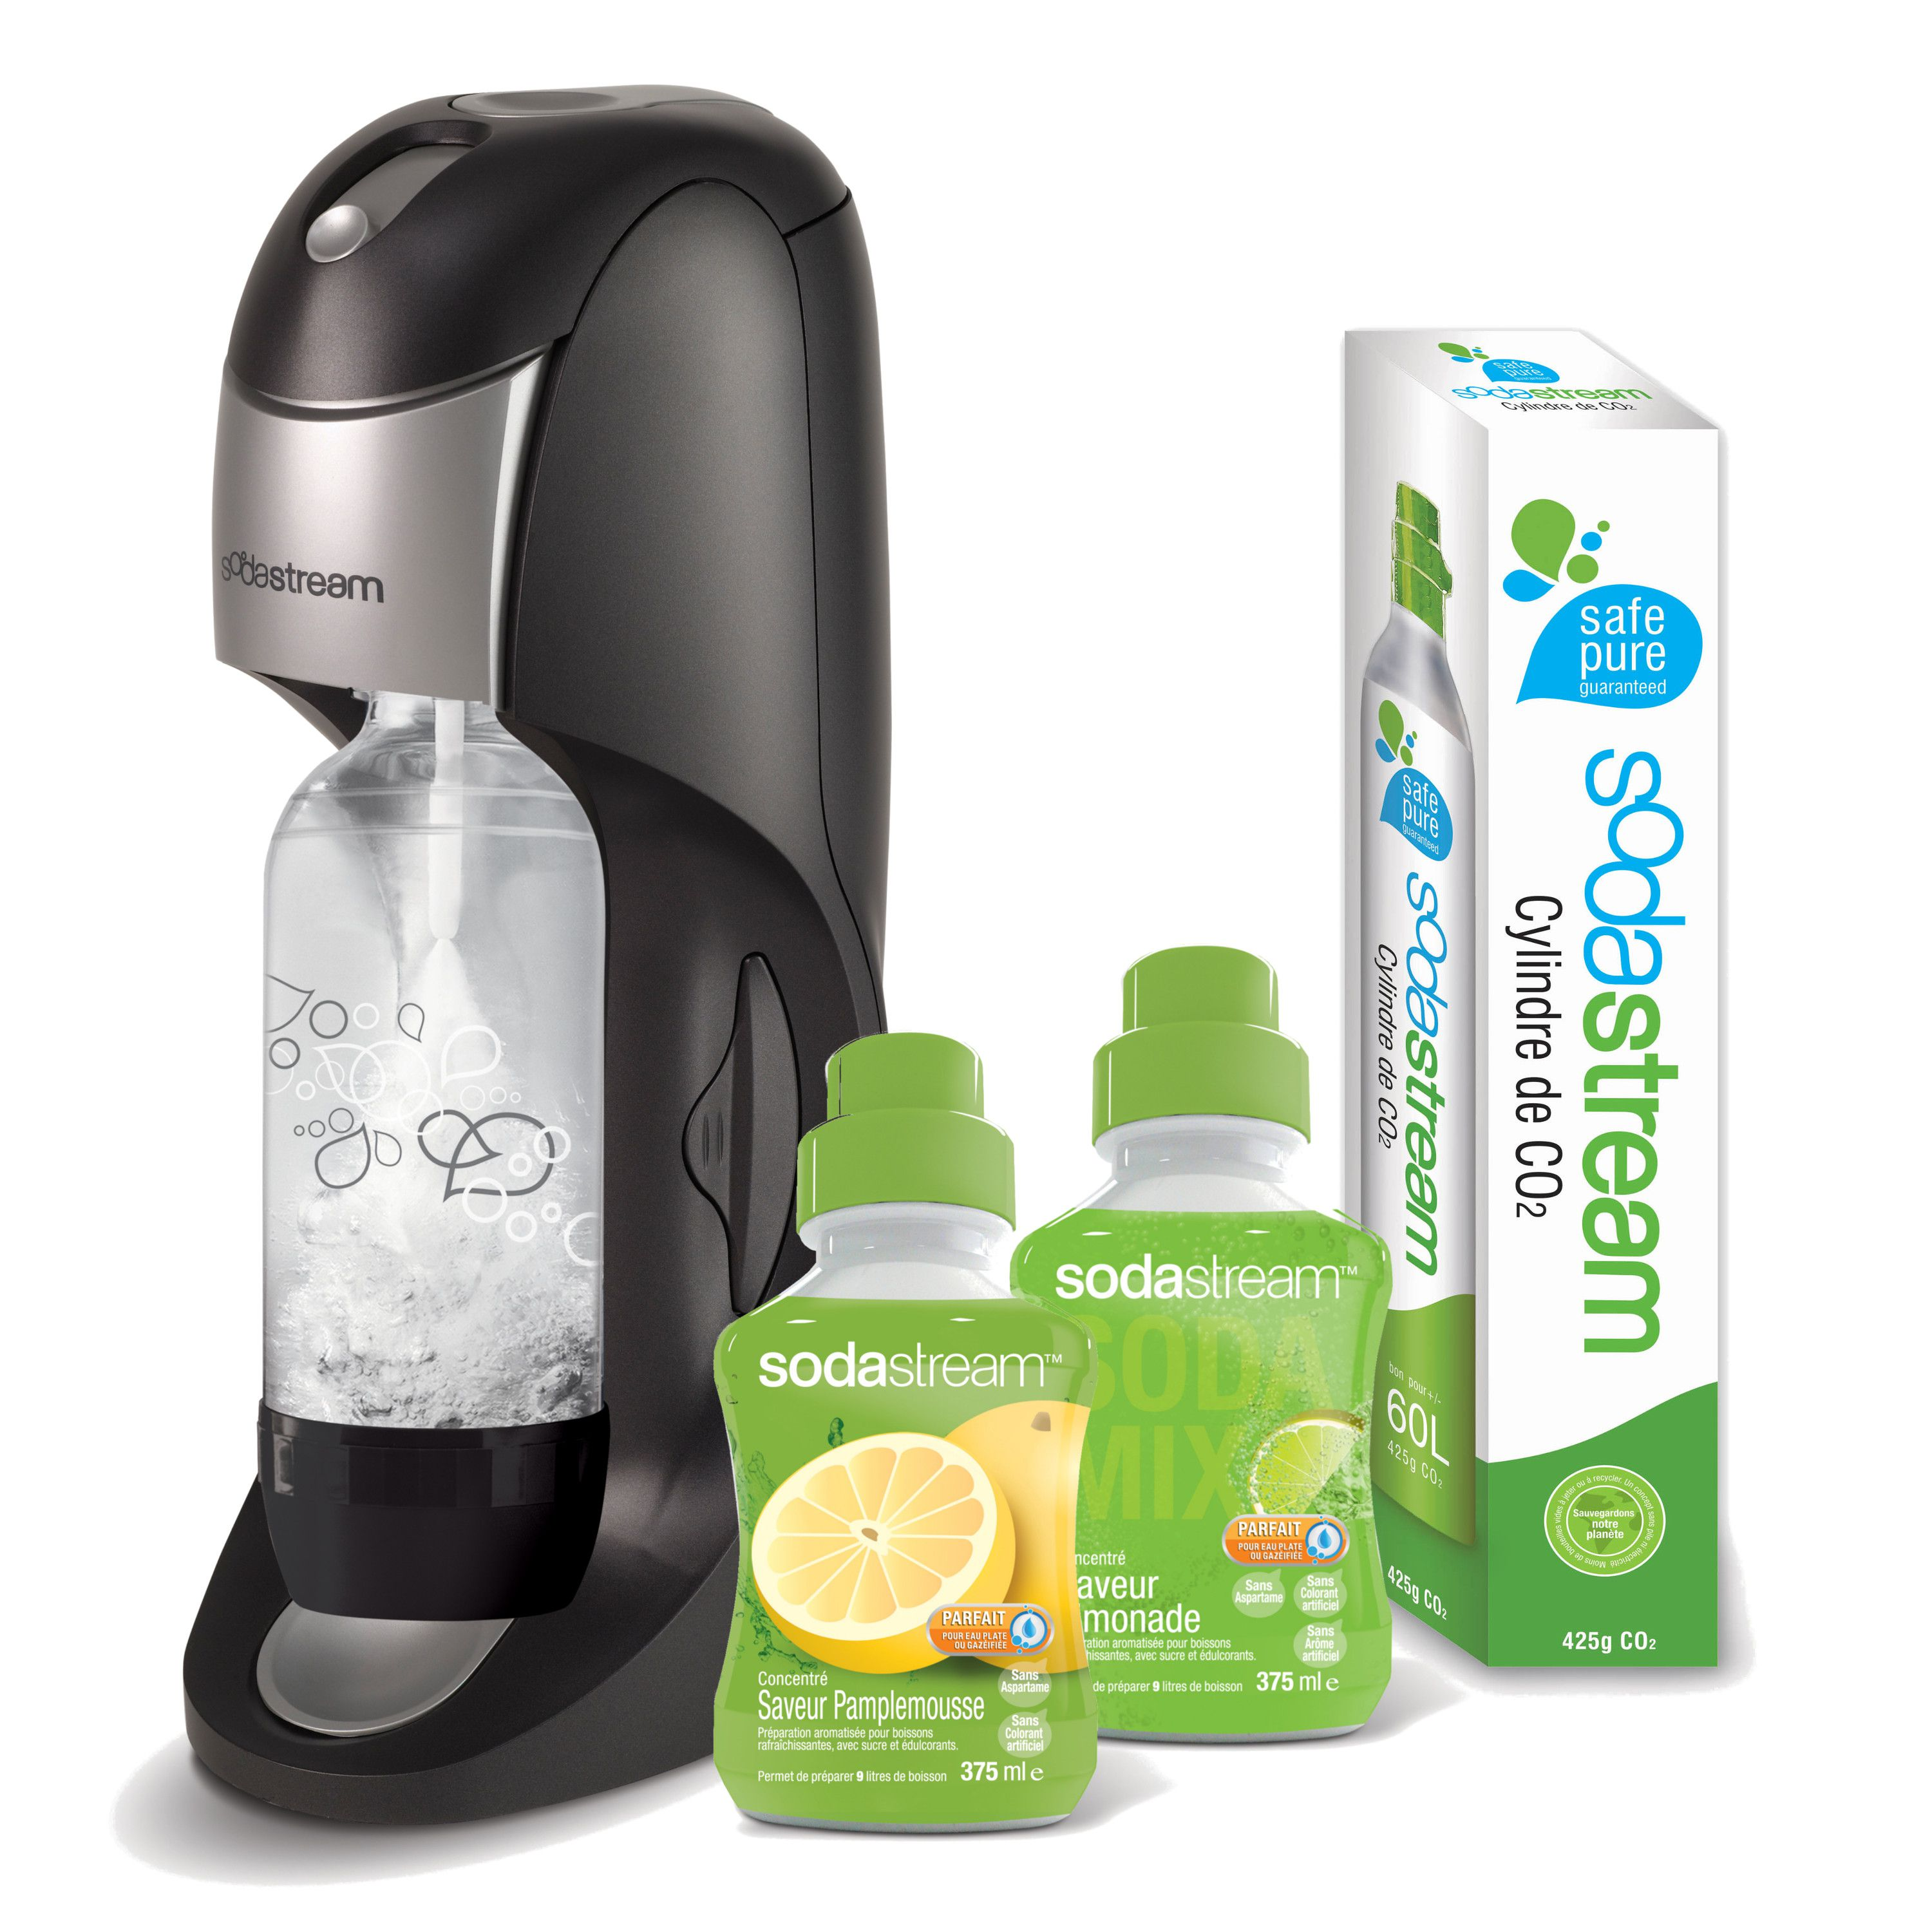 Coupons reduction bouteille gaz sodastream